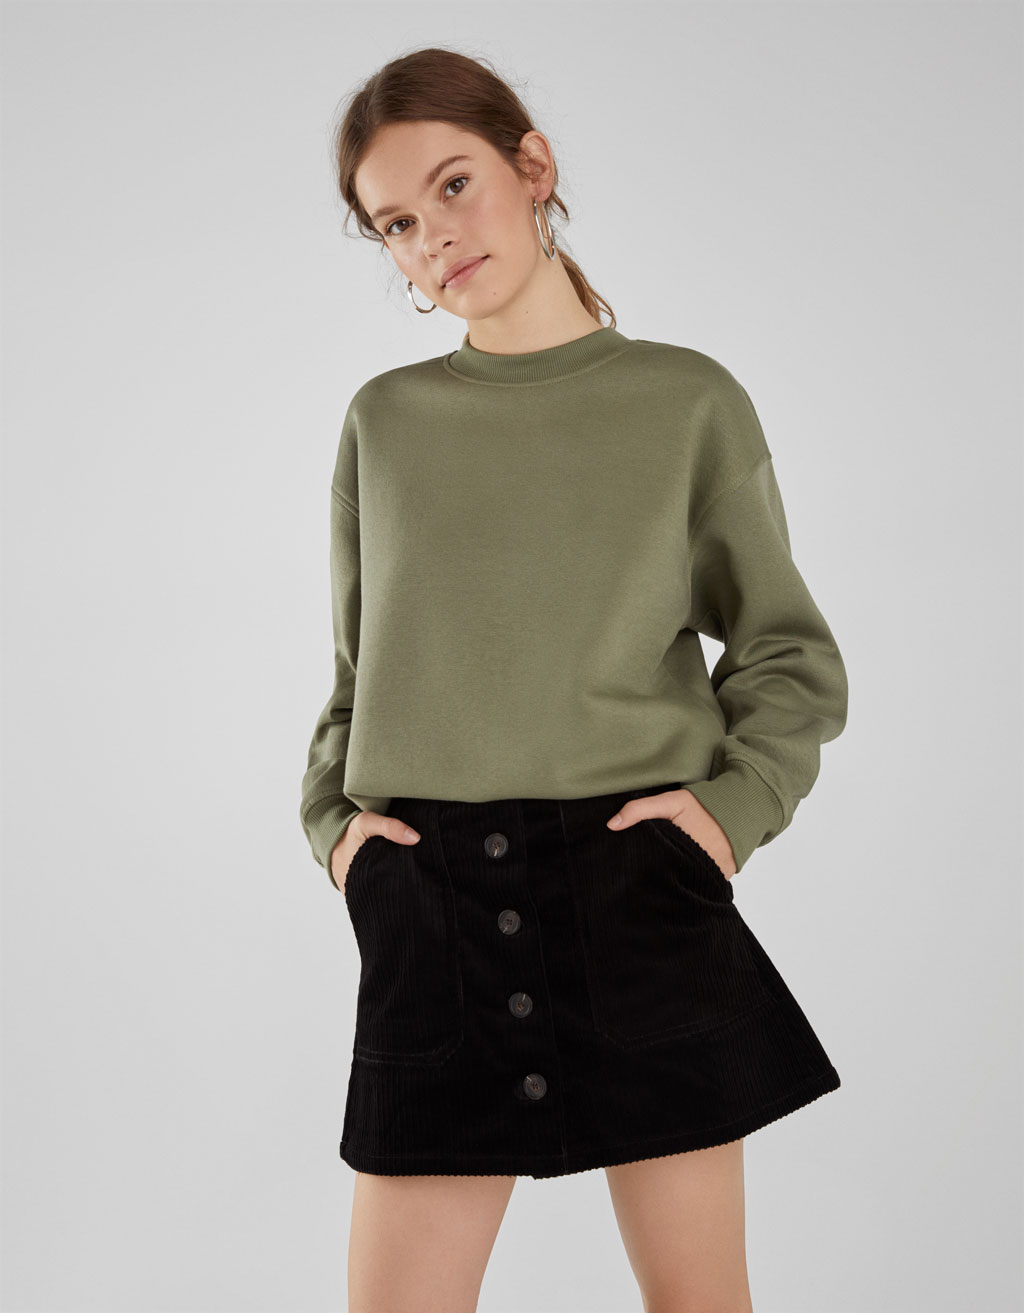 Round neck sweatshirt